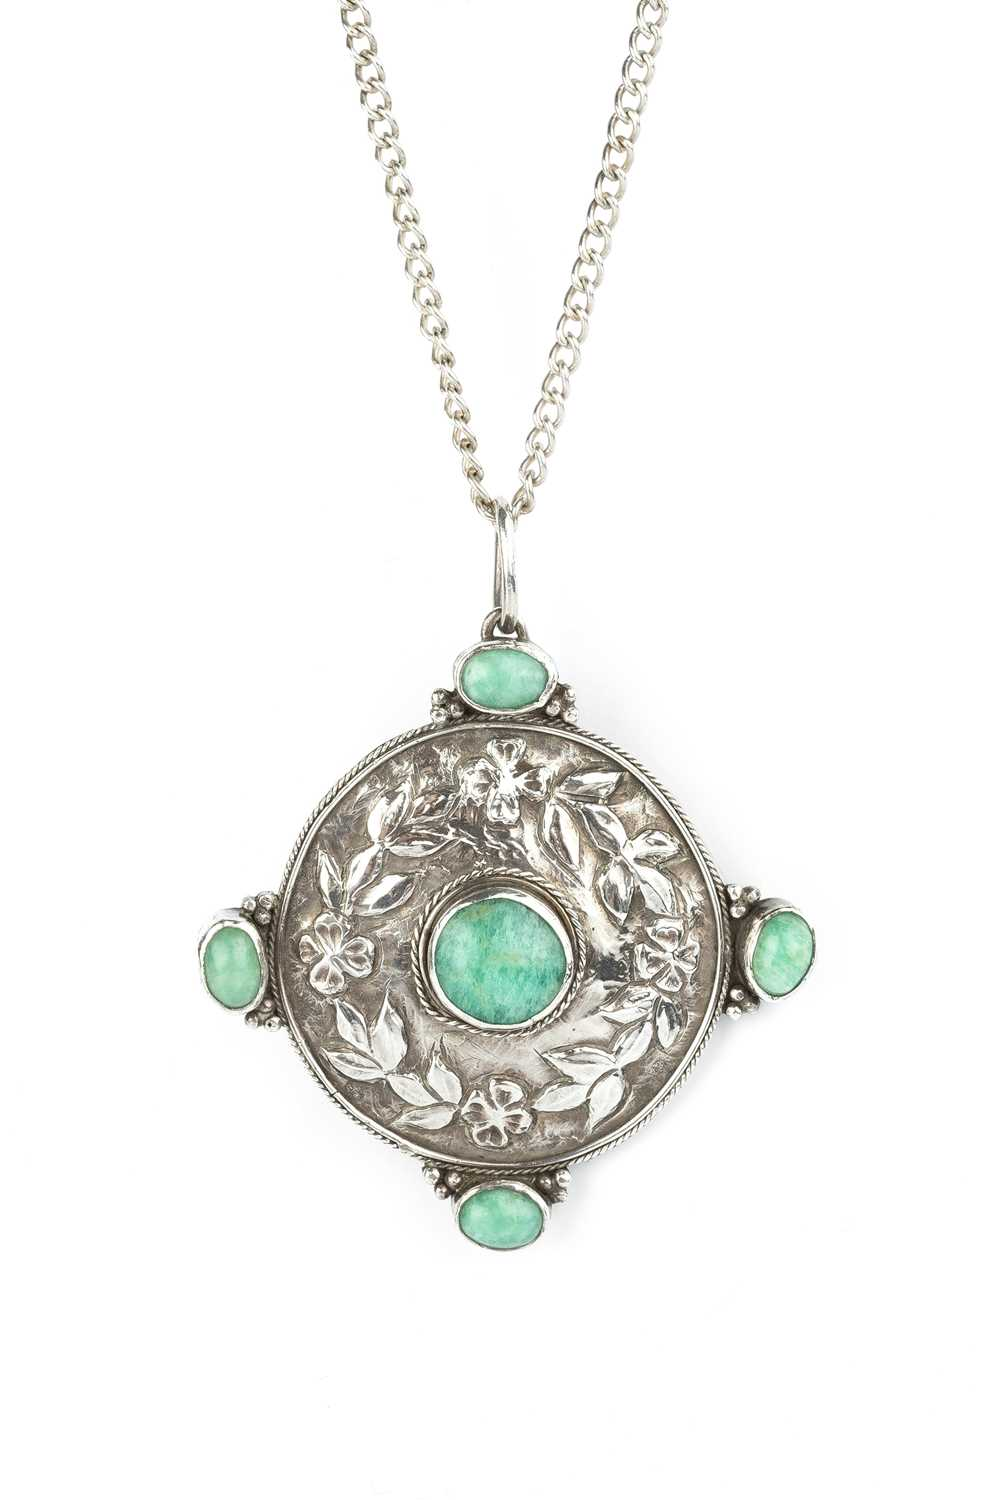 An Arts and Crafts pendant, the circular panel decorated with a wreath of foliage and flowerheads,